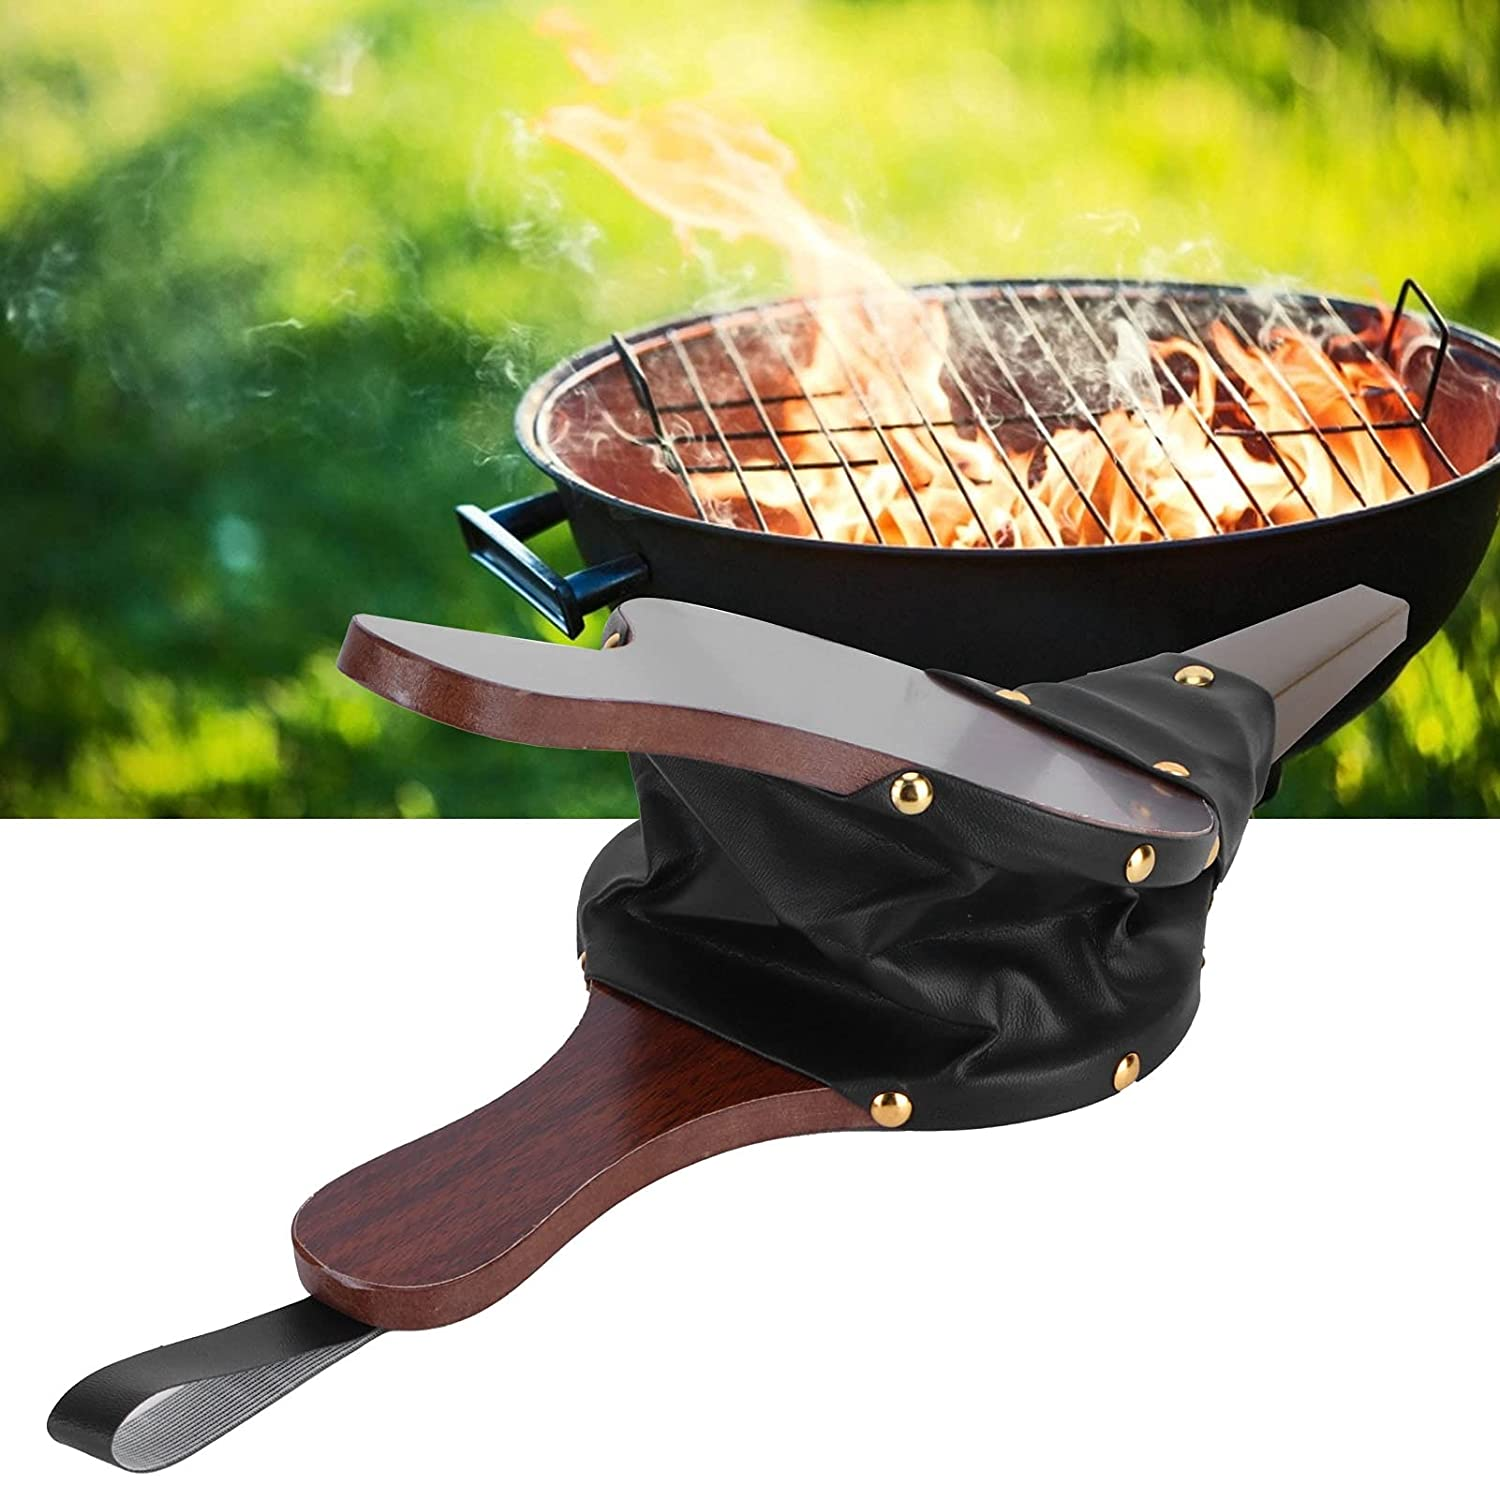 Hand Bellow Fireplace New life Blower Safe Barbecues Max 40% OFF Picnics for and